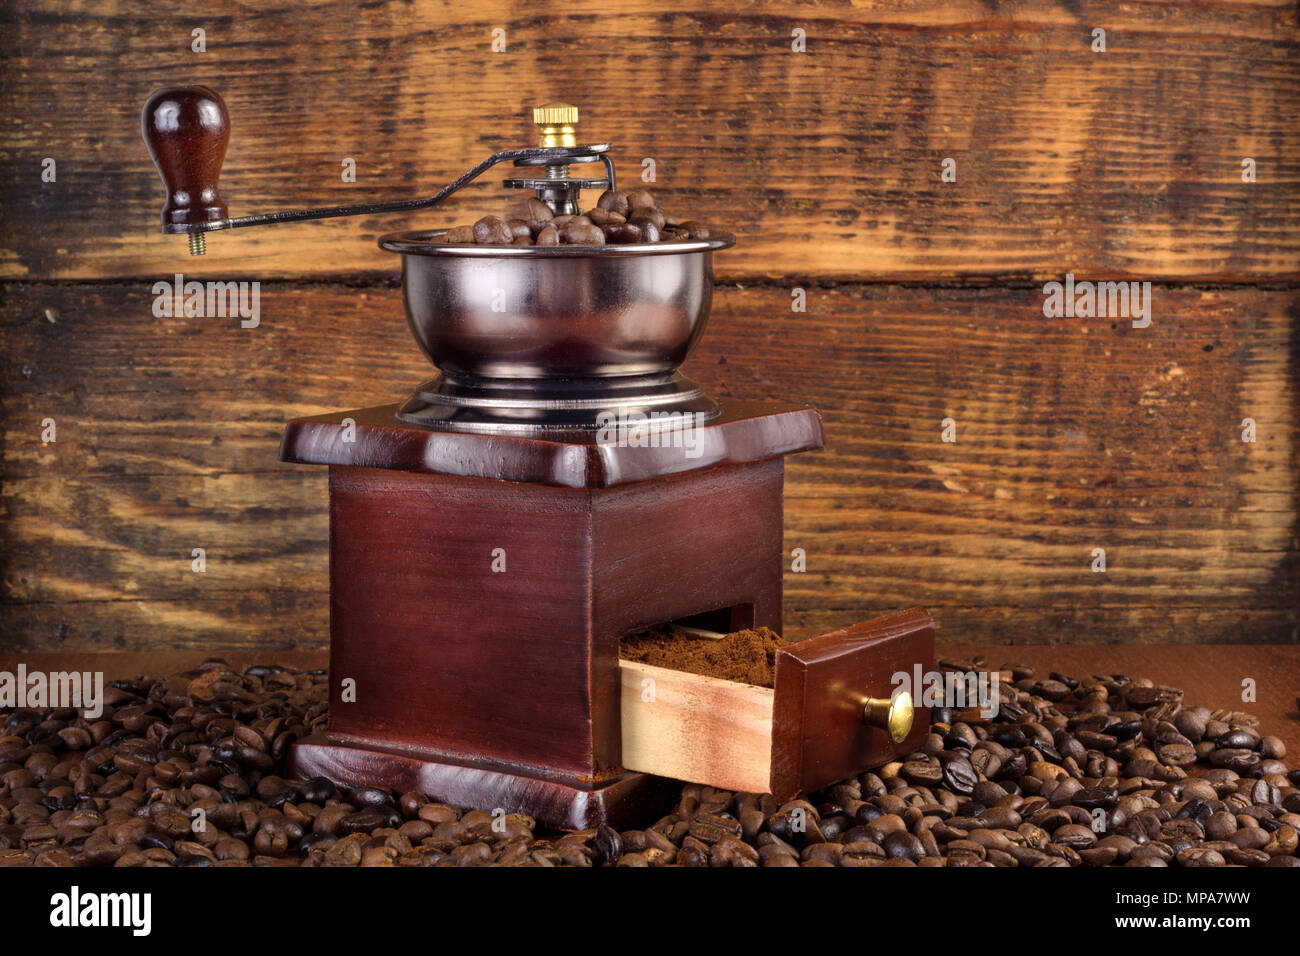 Traditional wooden coffee mill grinder with roasted coffee beans and wooden background. Retro and Vintage Food and drink concept Stock Photo